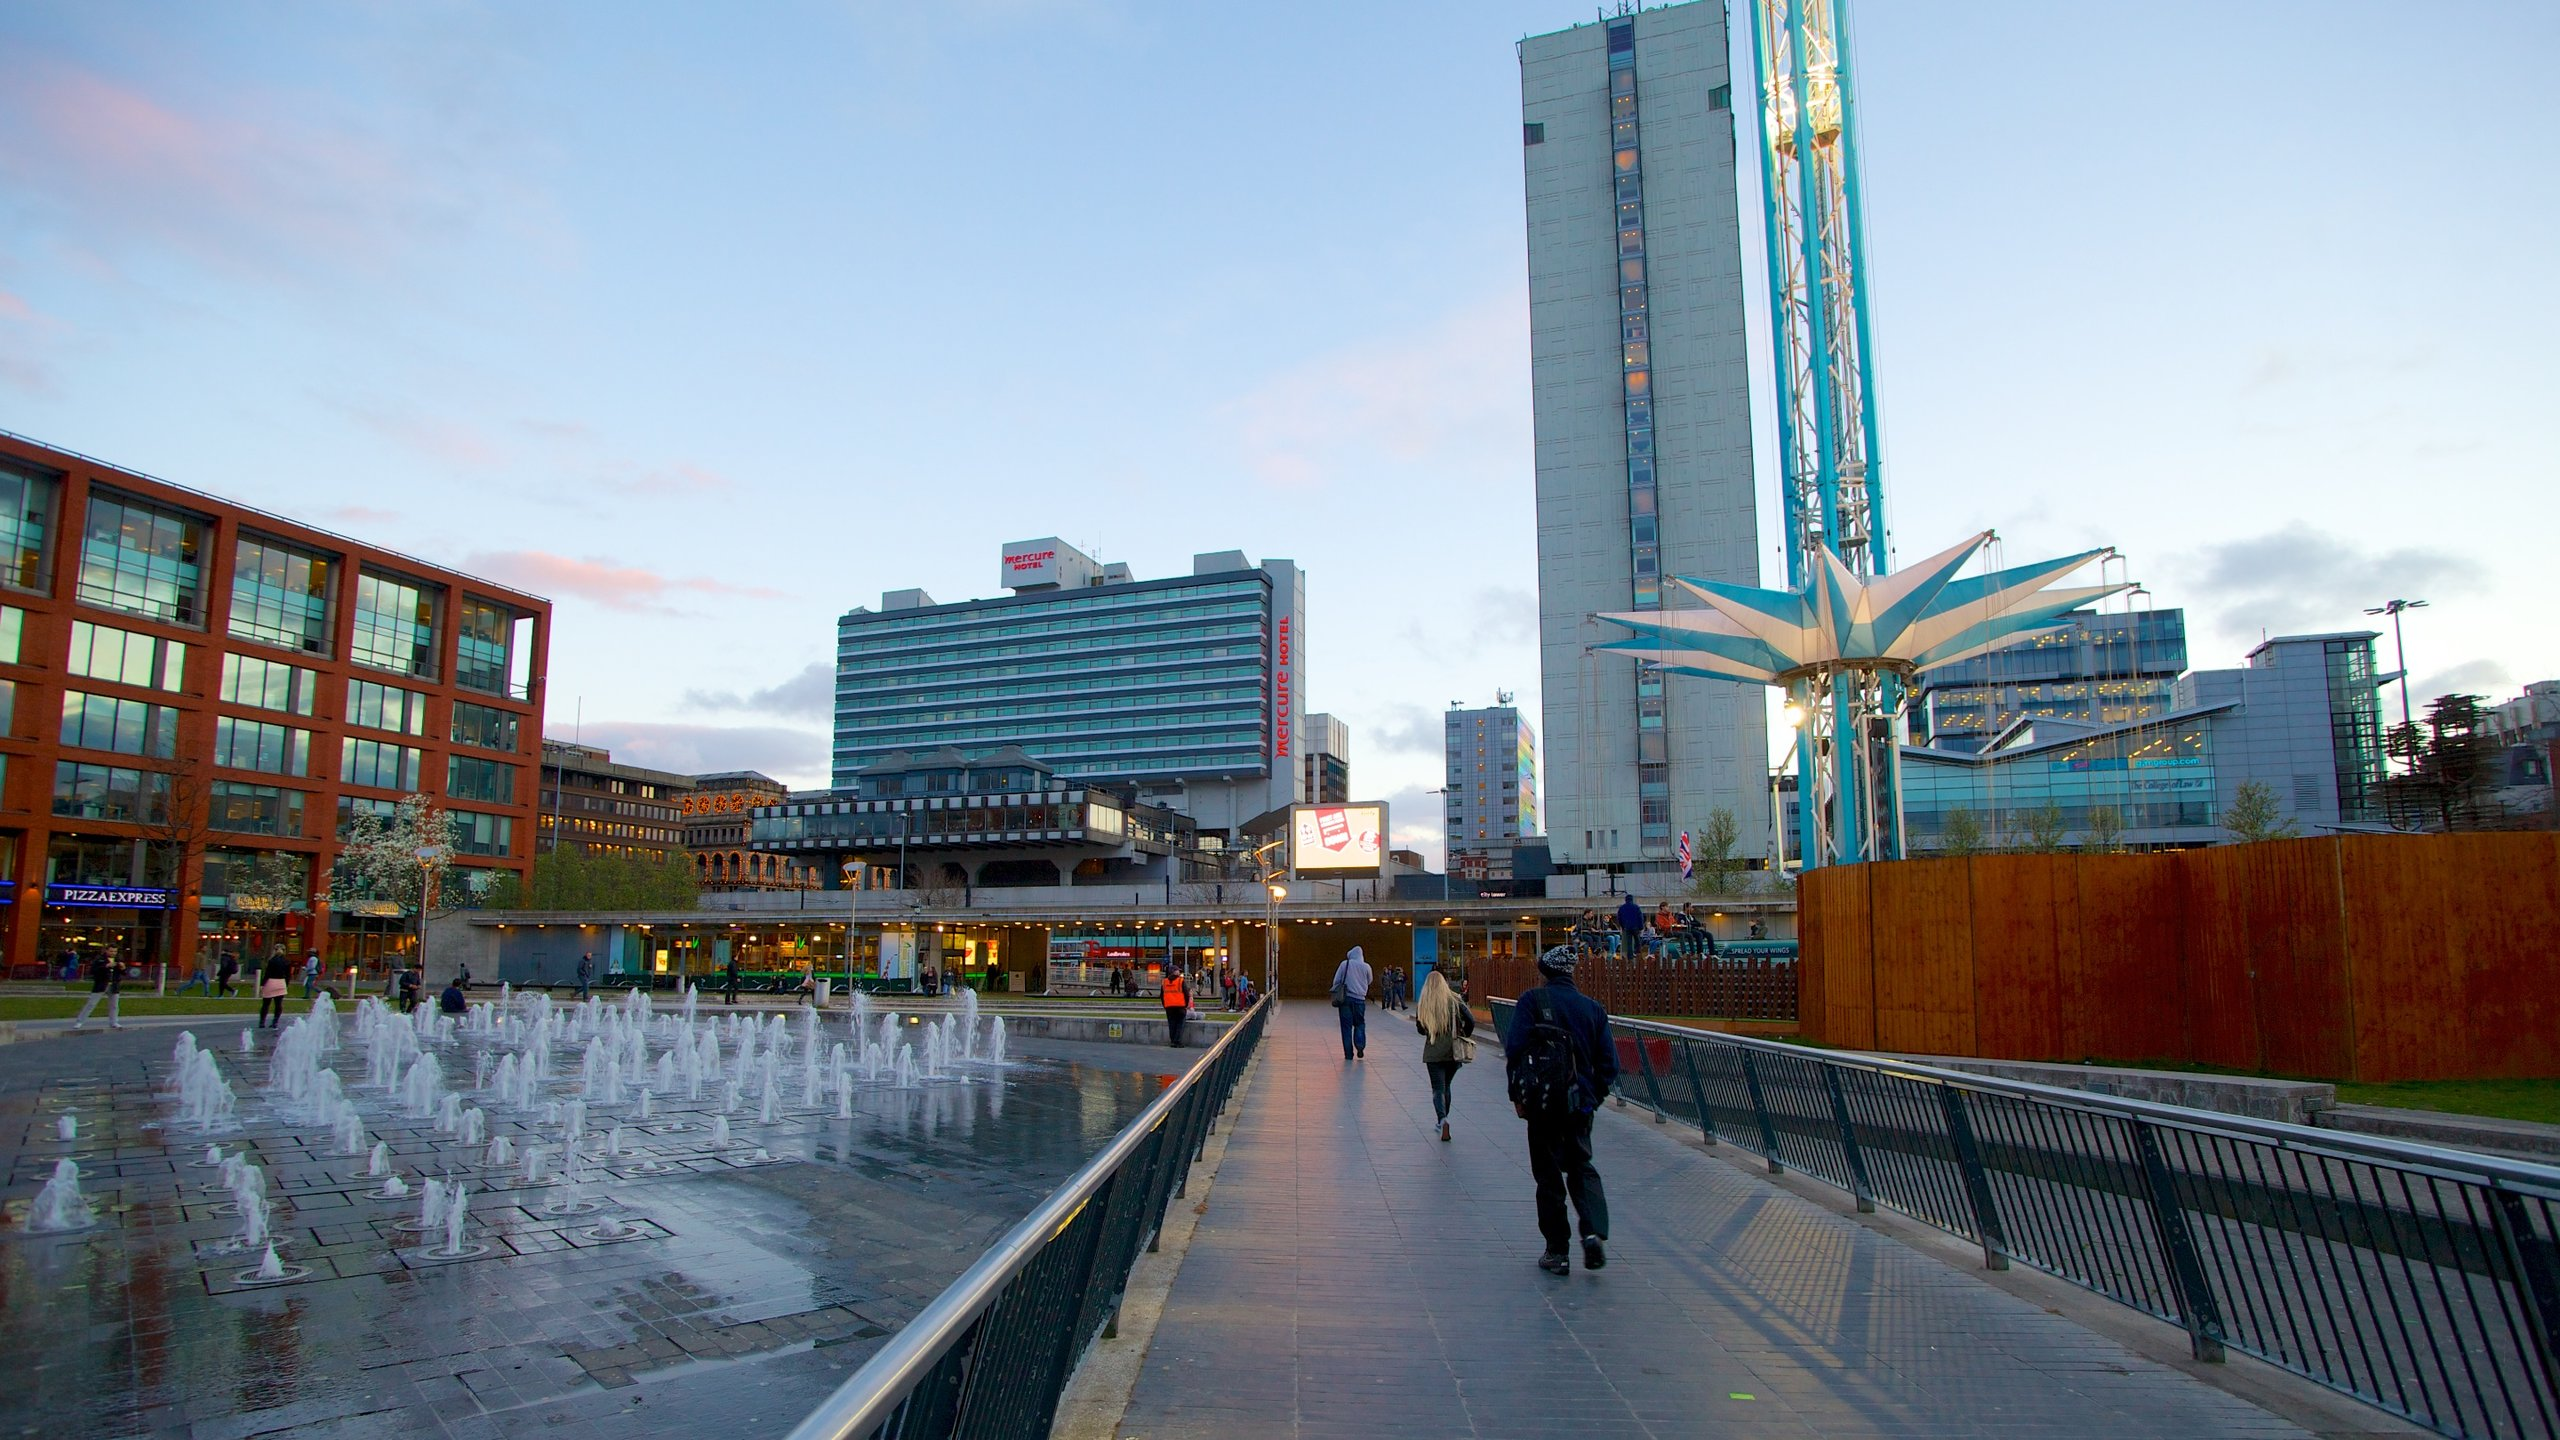 Travelodge Uk Hotels In Manchester City Centre Expedia